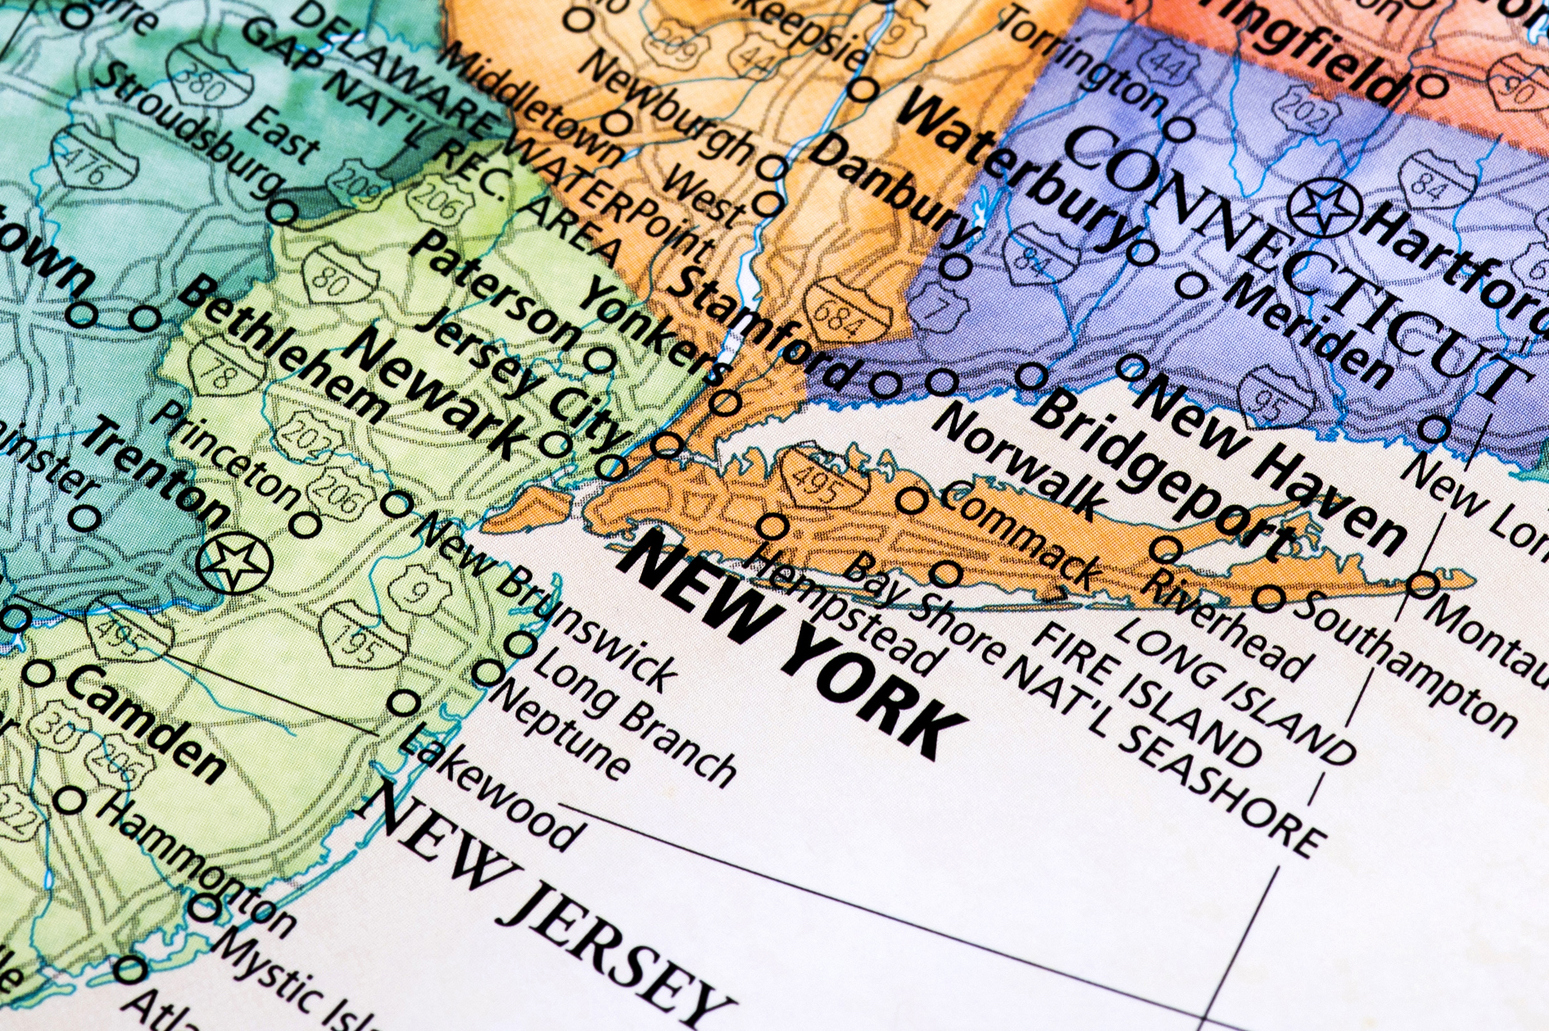 Map Of New York New Jersey And Connecticut.State And Local Tax Roundup The Cpa Journal